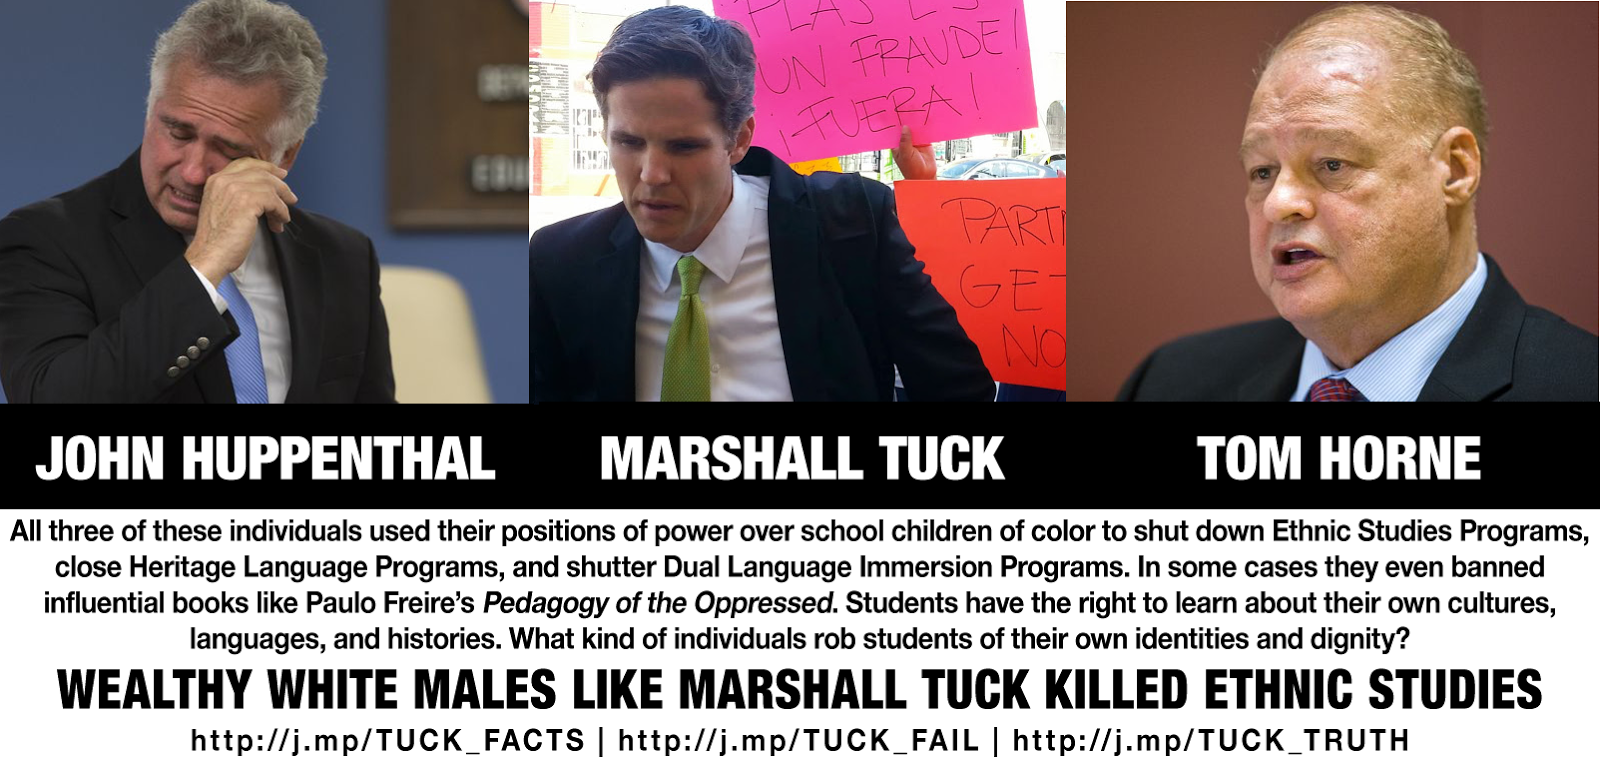 There should be no space in education for bigots like Marshall Tuck, Tom Horne, and John Huppenthal